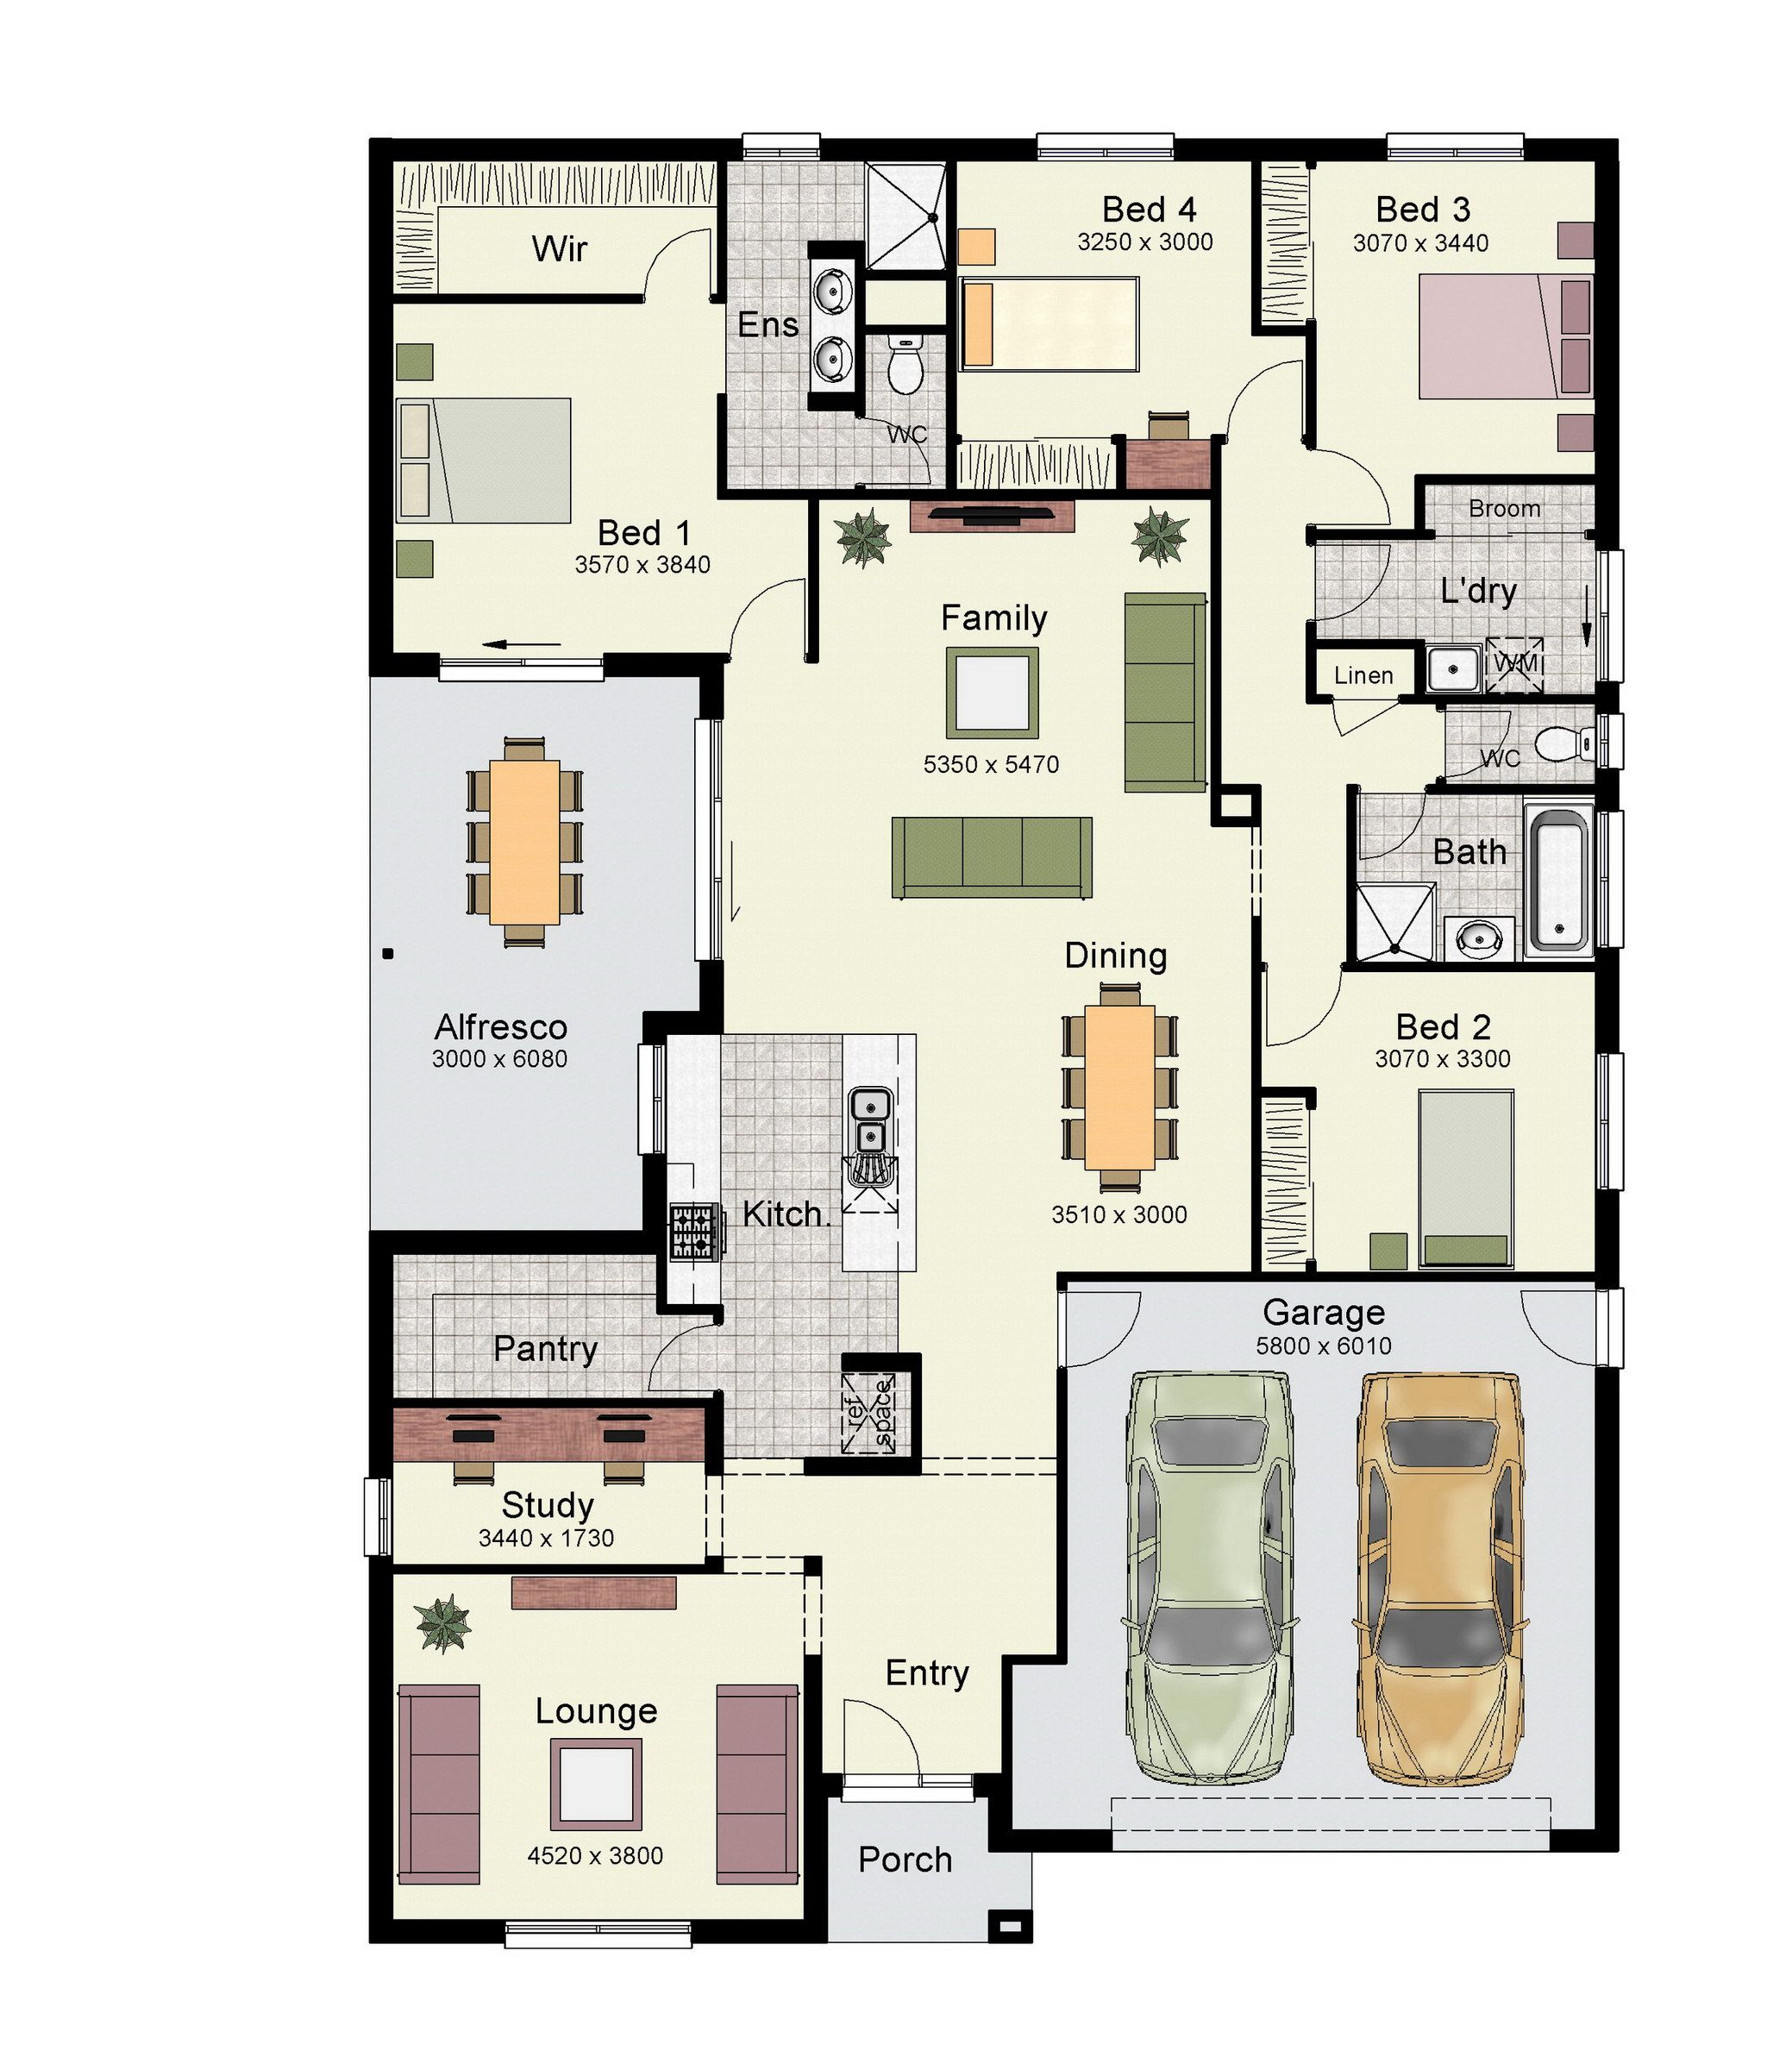 Double Garage Design In Sidcup: The Eureka 263 Features Four Bedrooms, Two Bathrooms And A